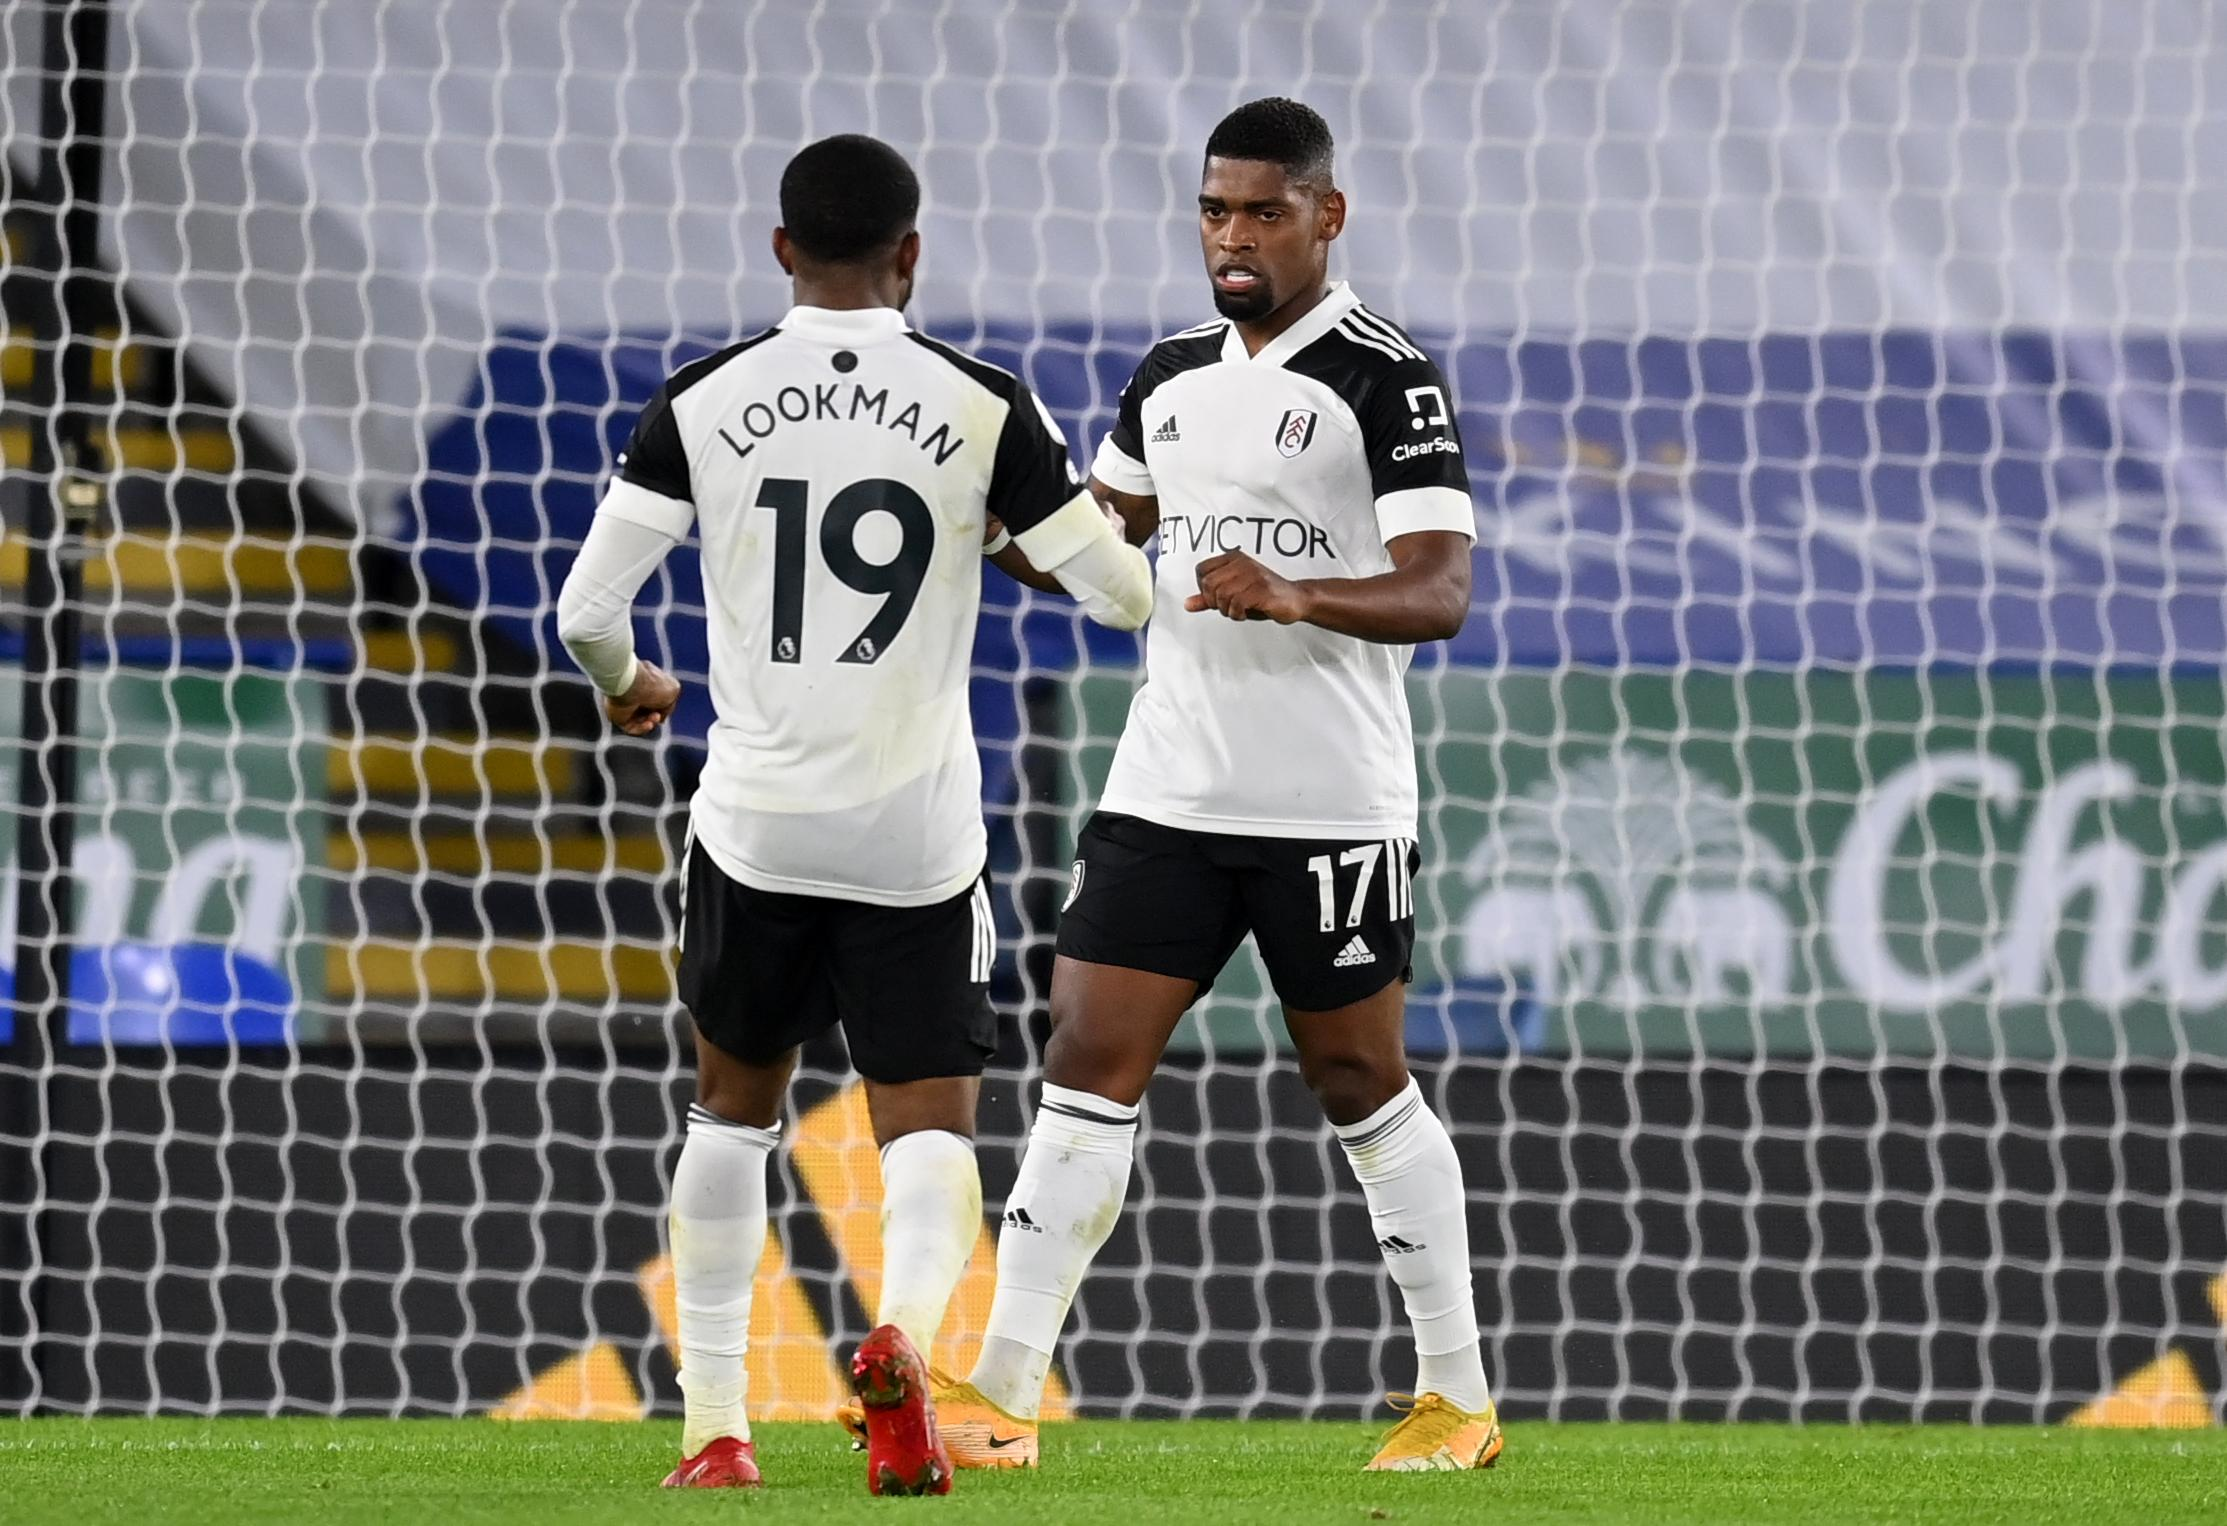 Premier League: Lookman On Target, Aina, Iheanacho In Action As Fulham Claim Away Win At Leicester